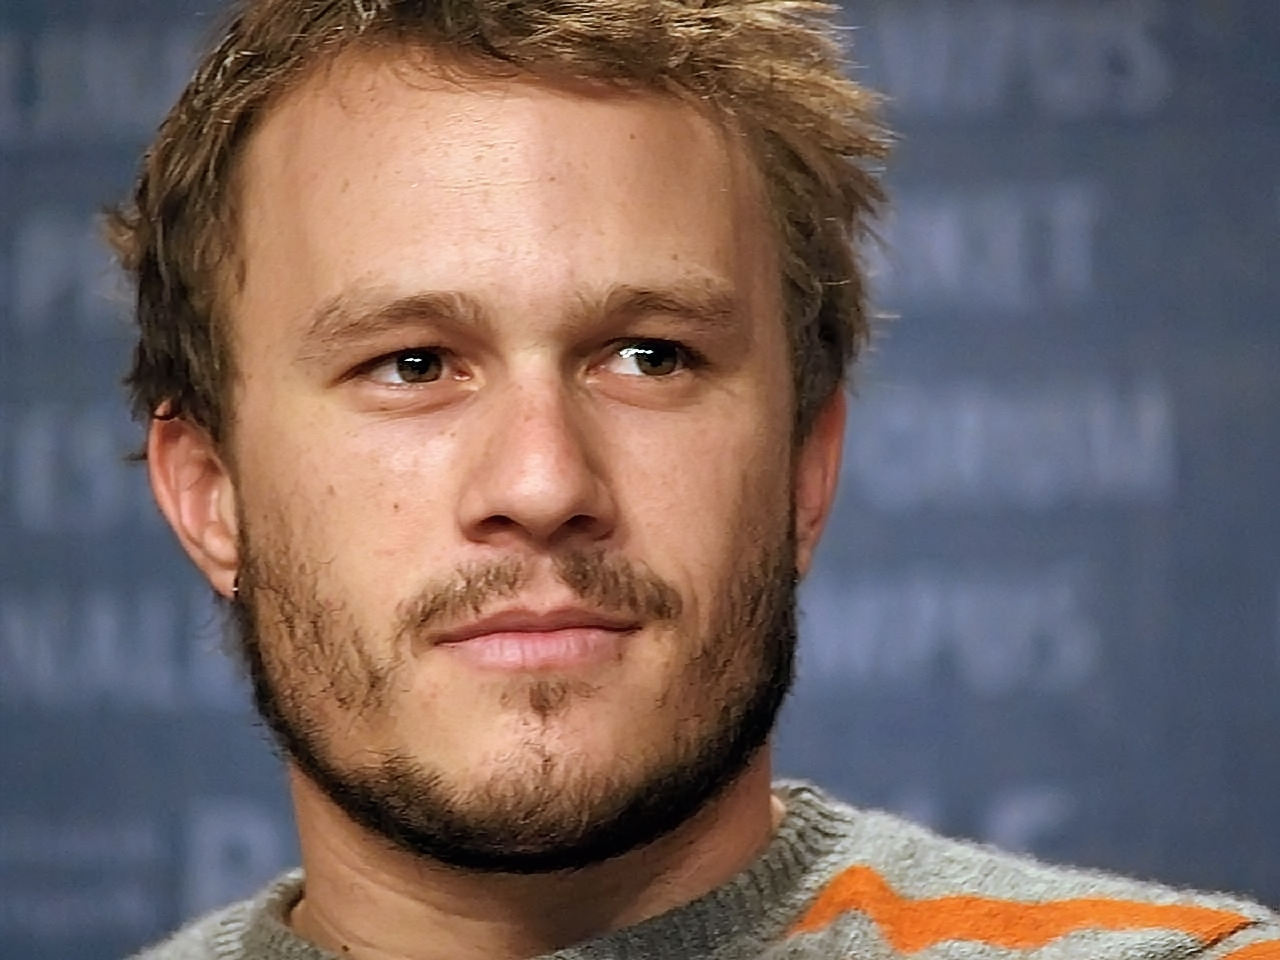 http://upload.wikimedia.org/wikipedia/commons/4/4f/Heath_Ledger.jpg